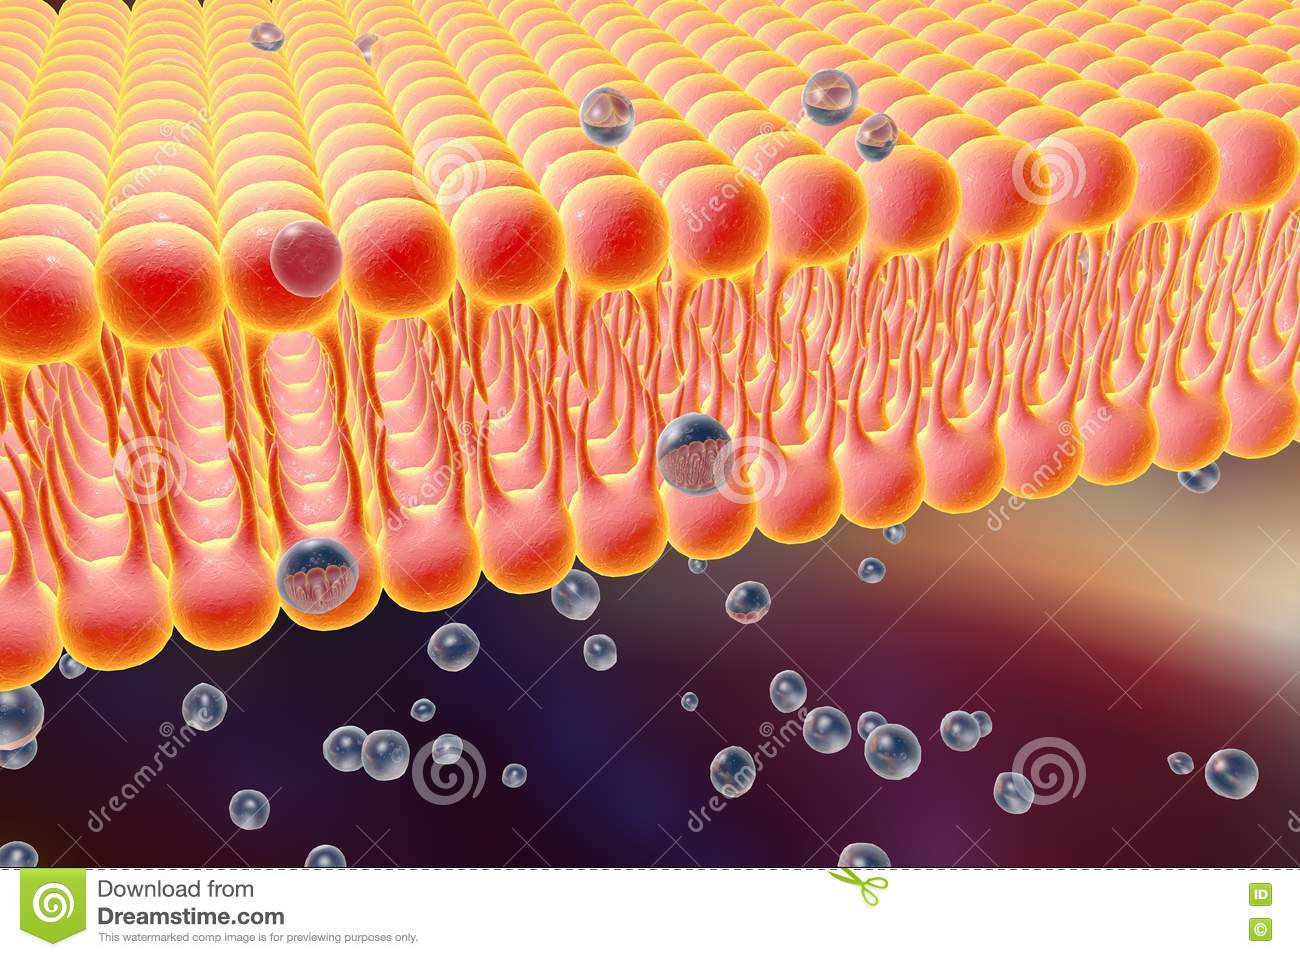 Cellular Membrane Diffusion Molecules Cell Lipid Bilayer D Illustration Liquid Cell